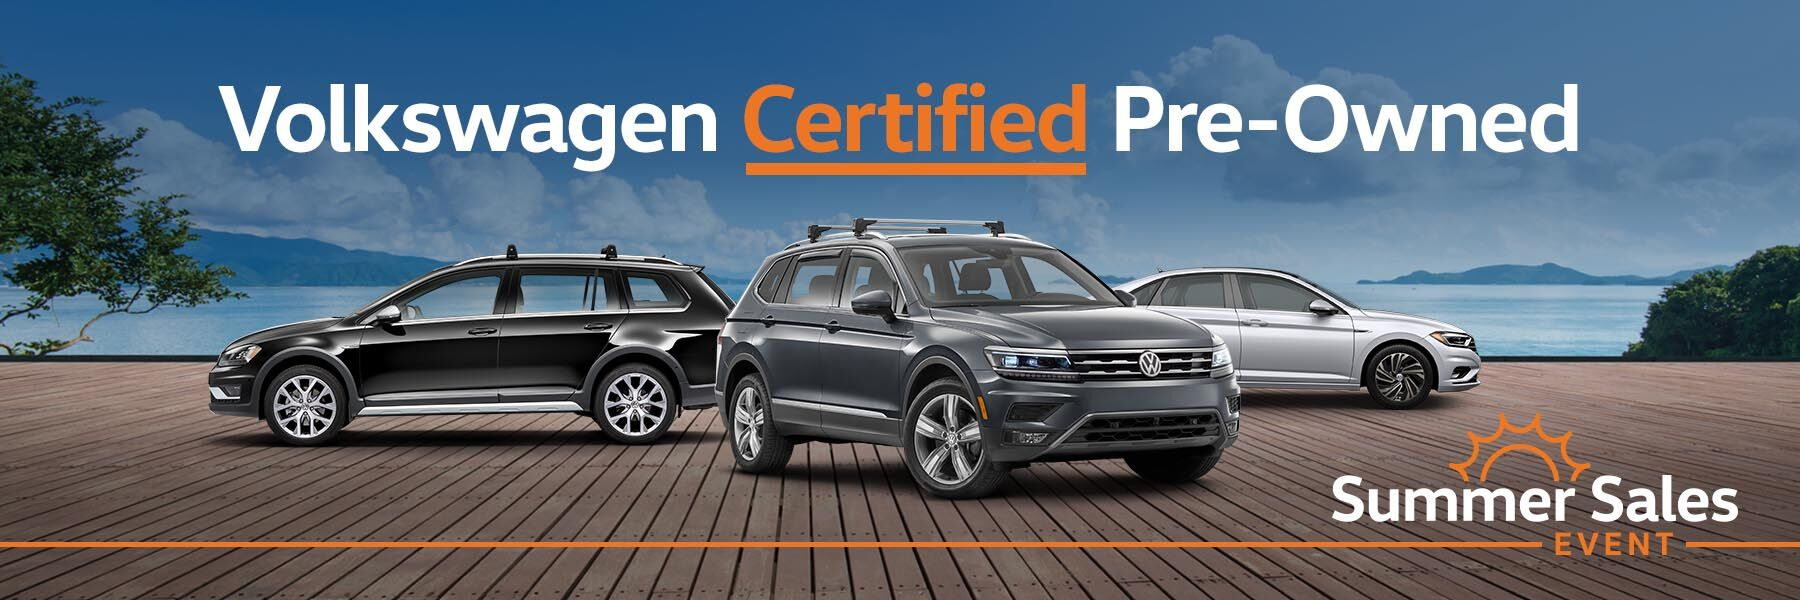 Volkswagen Certified Pre-Owned in Brownsville, TX